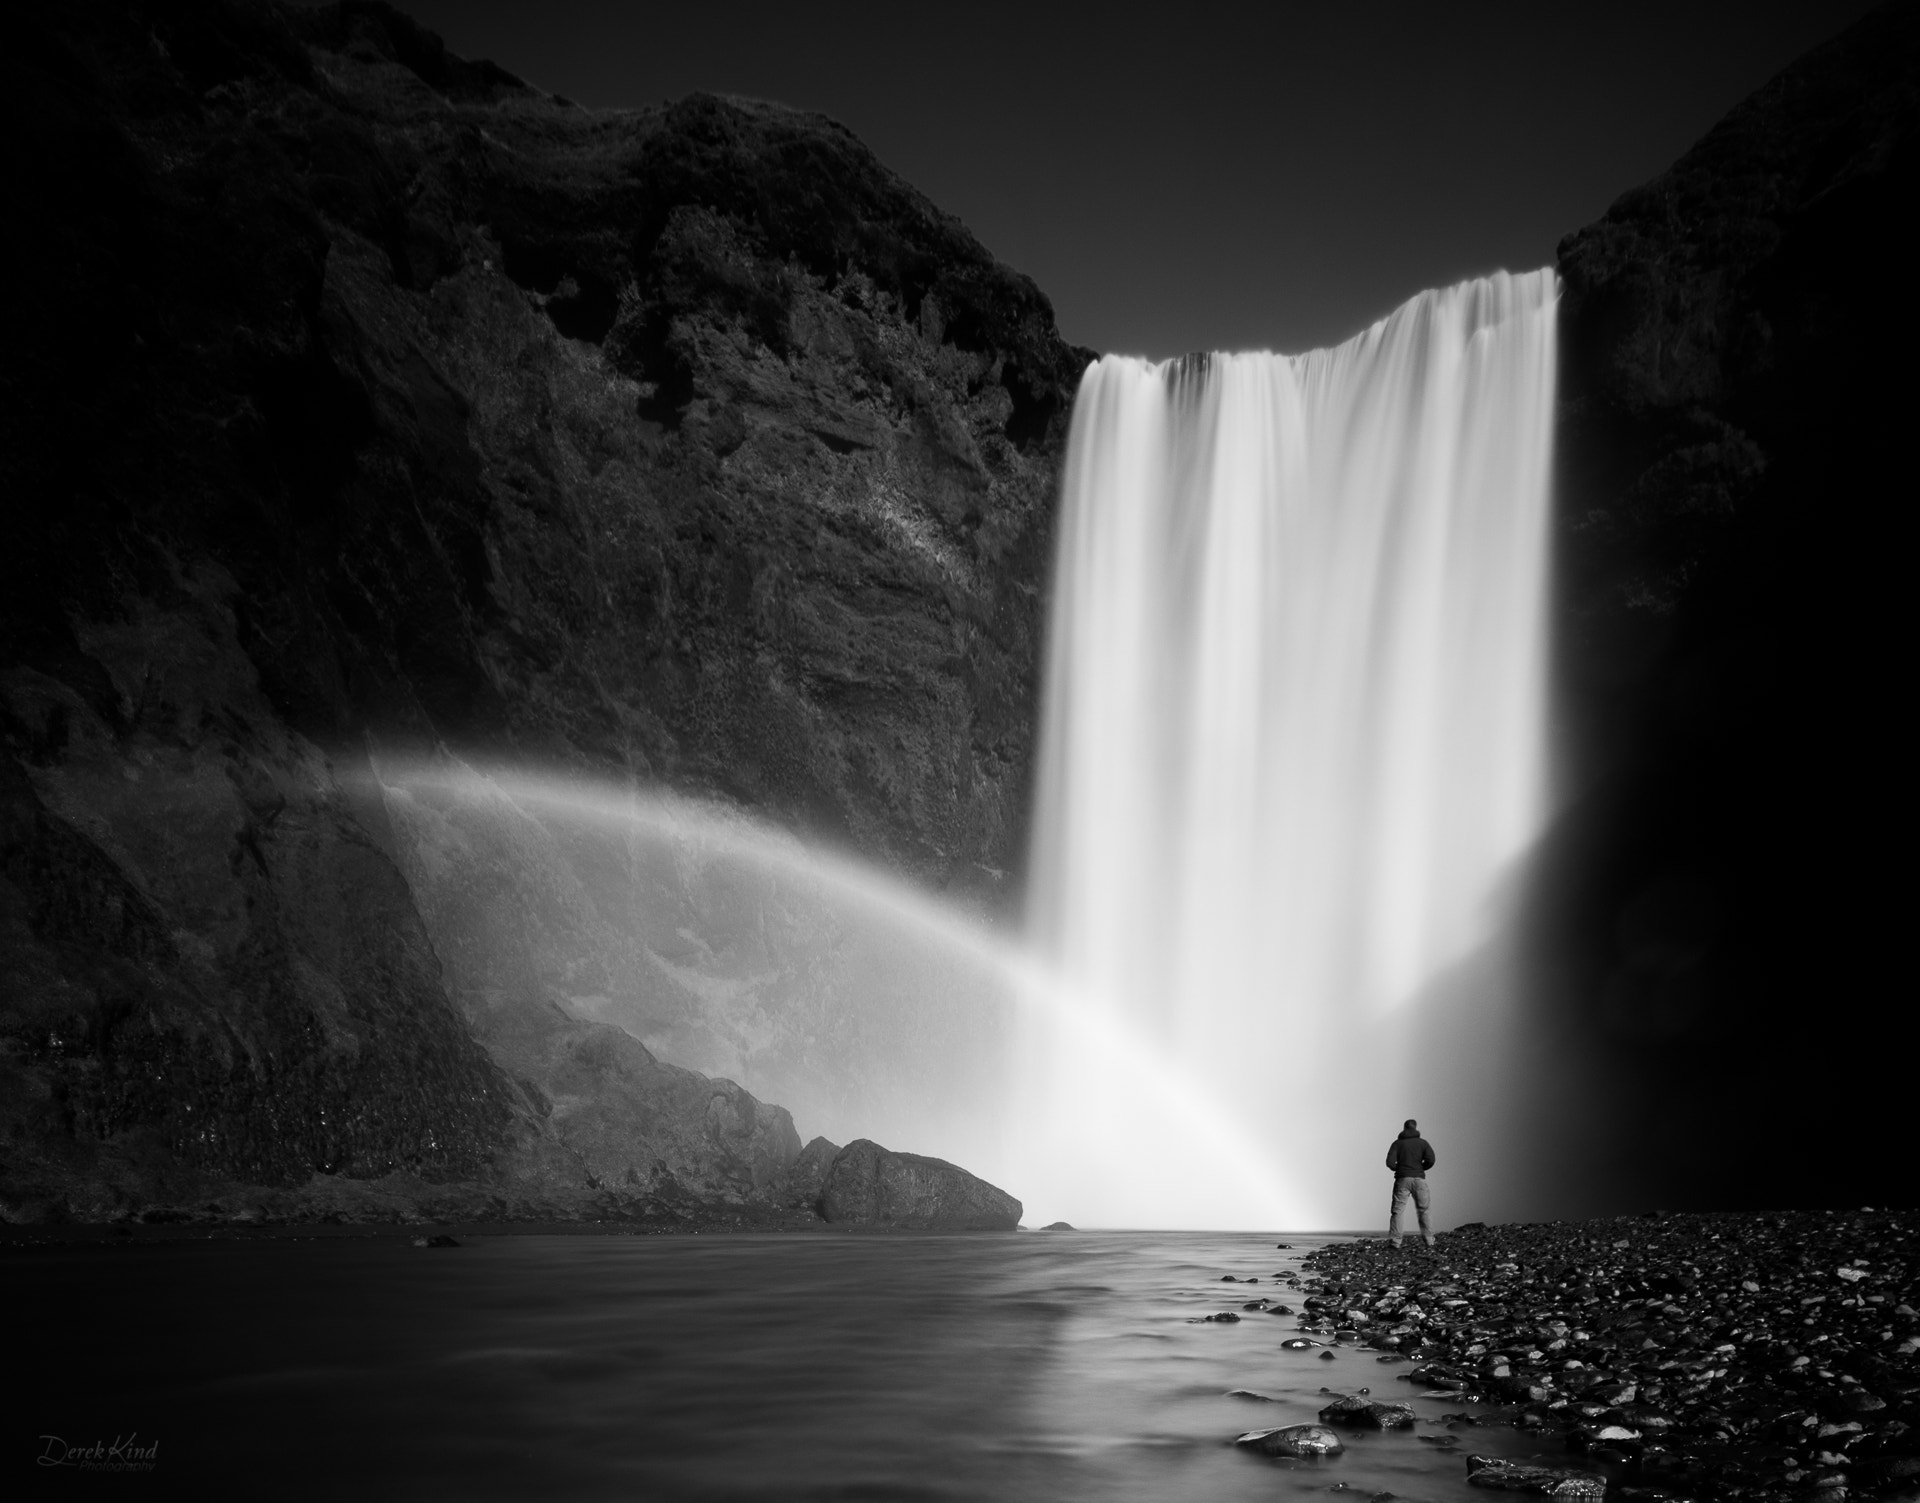 Photograph Skogafoss Selfy by Derek Kind on 500px